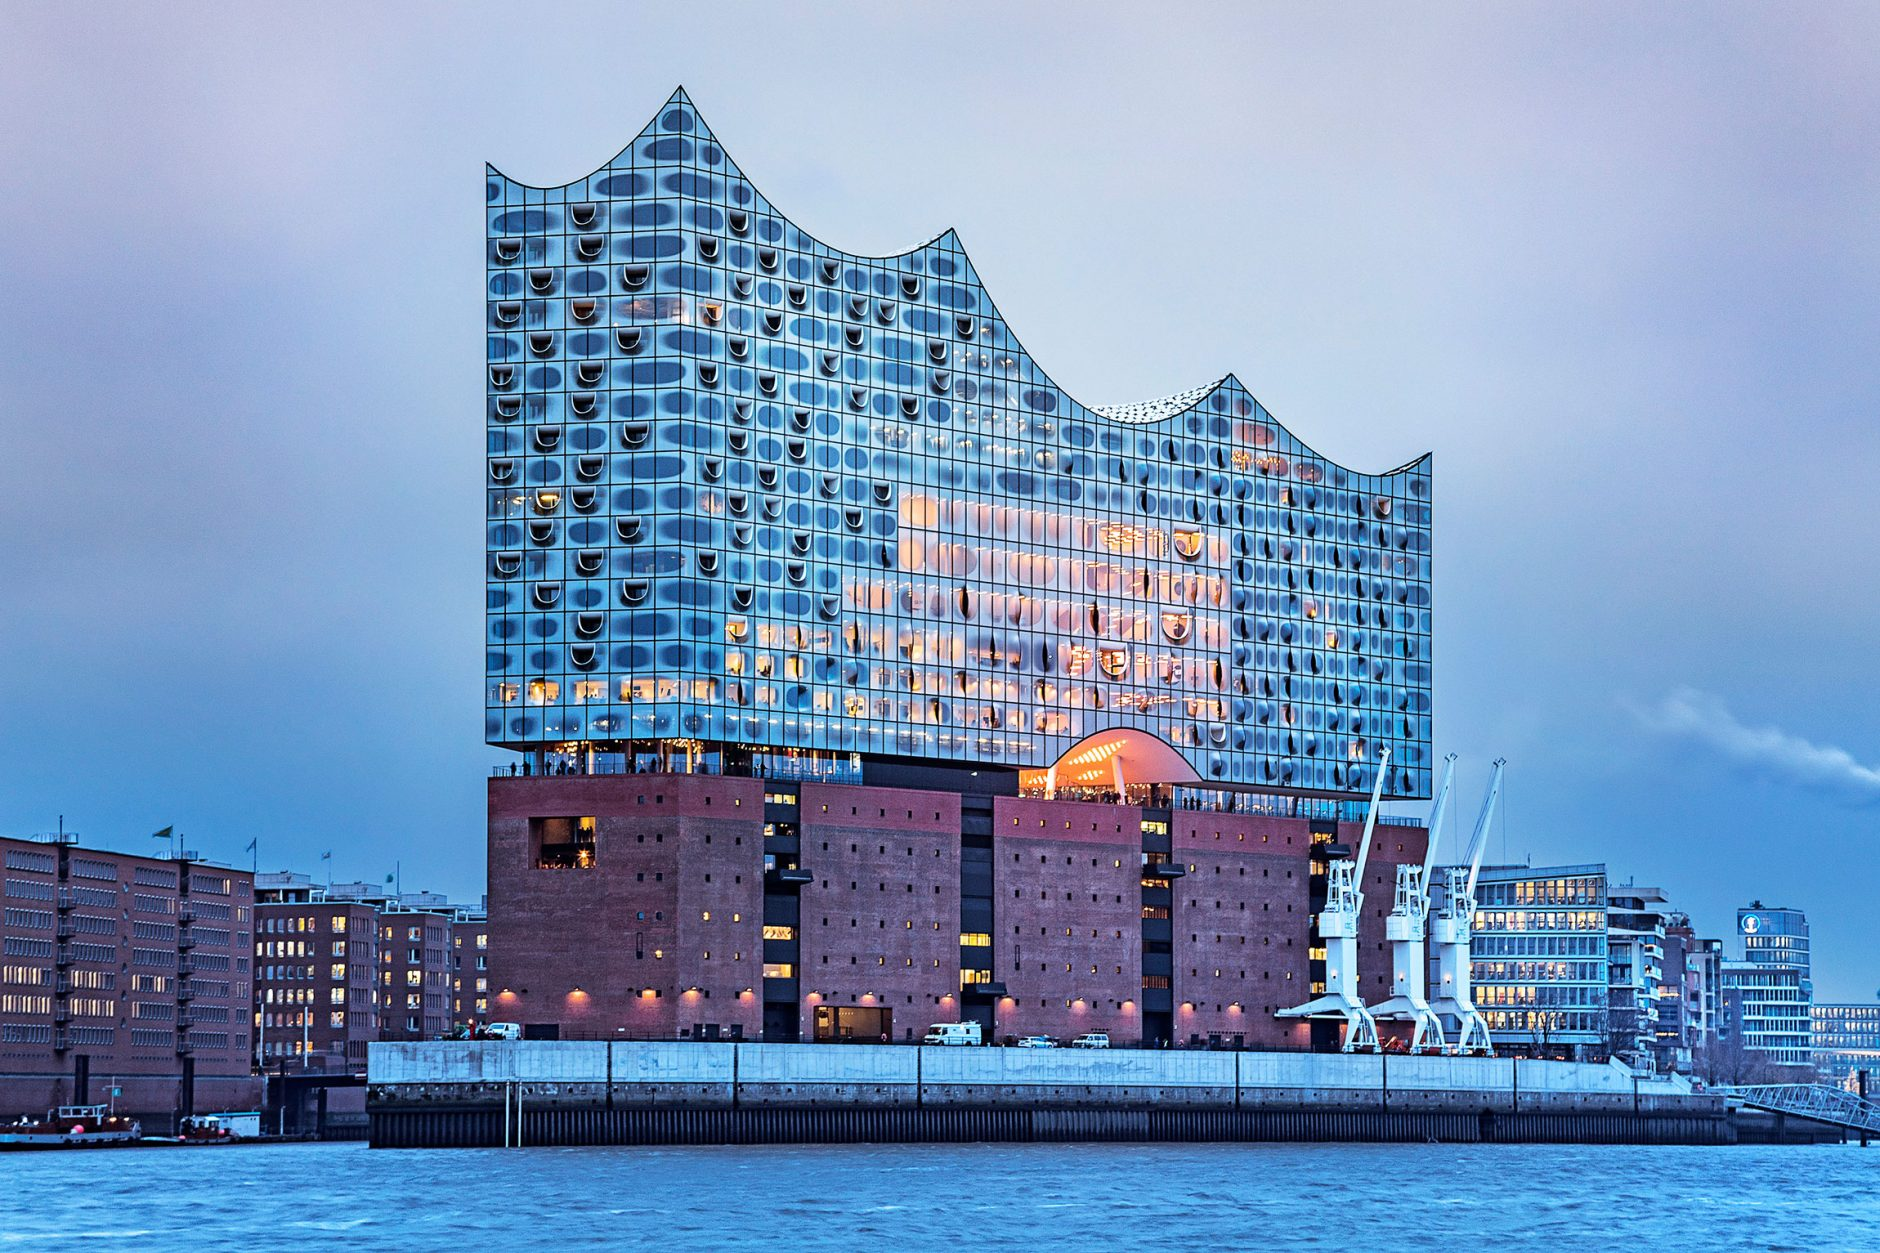 The Design For The New Elbphilharmonie.